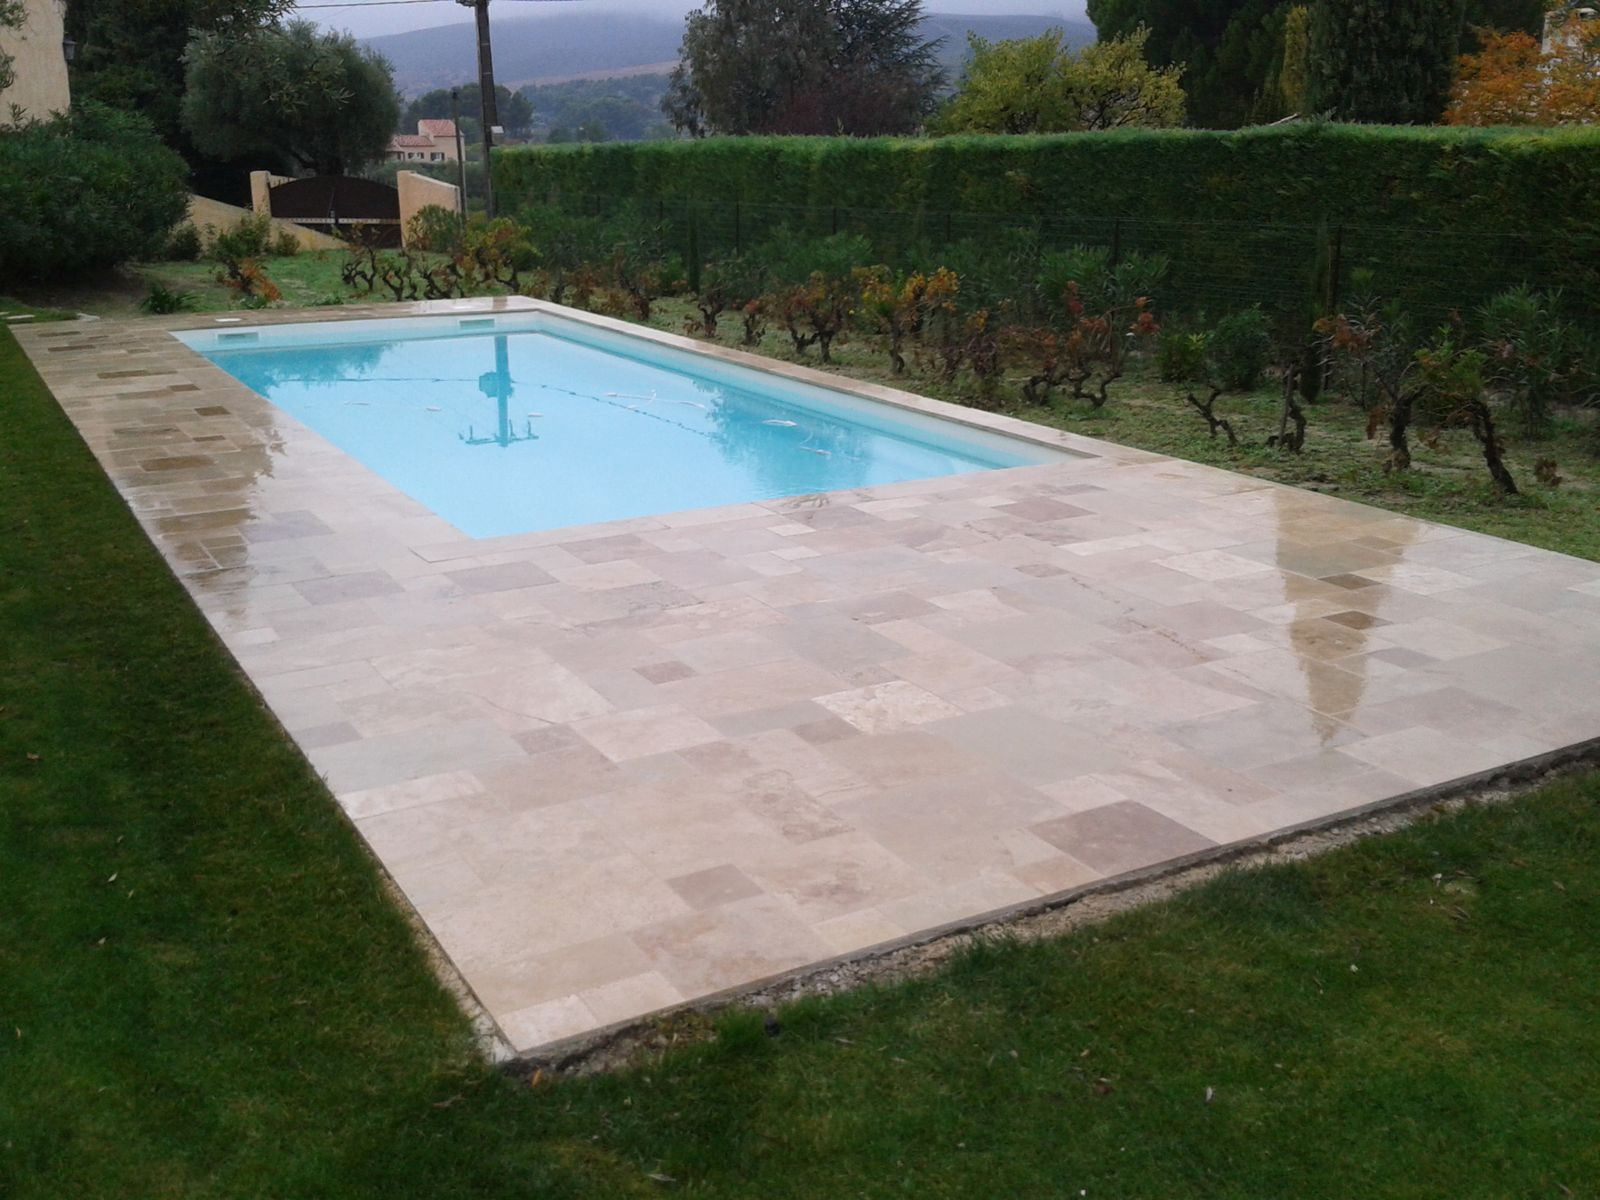 Carrelage piscine leroy merlin 28 images carrelage for Amenagement piscine